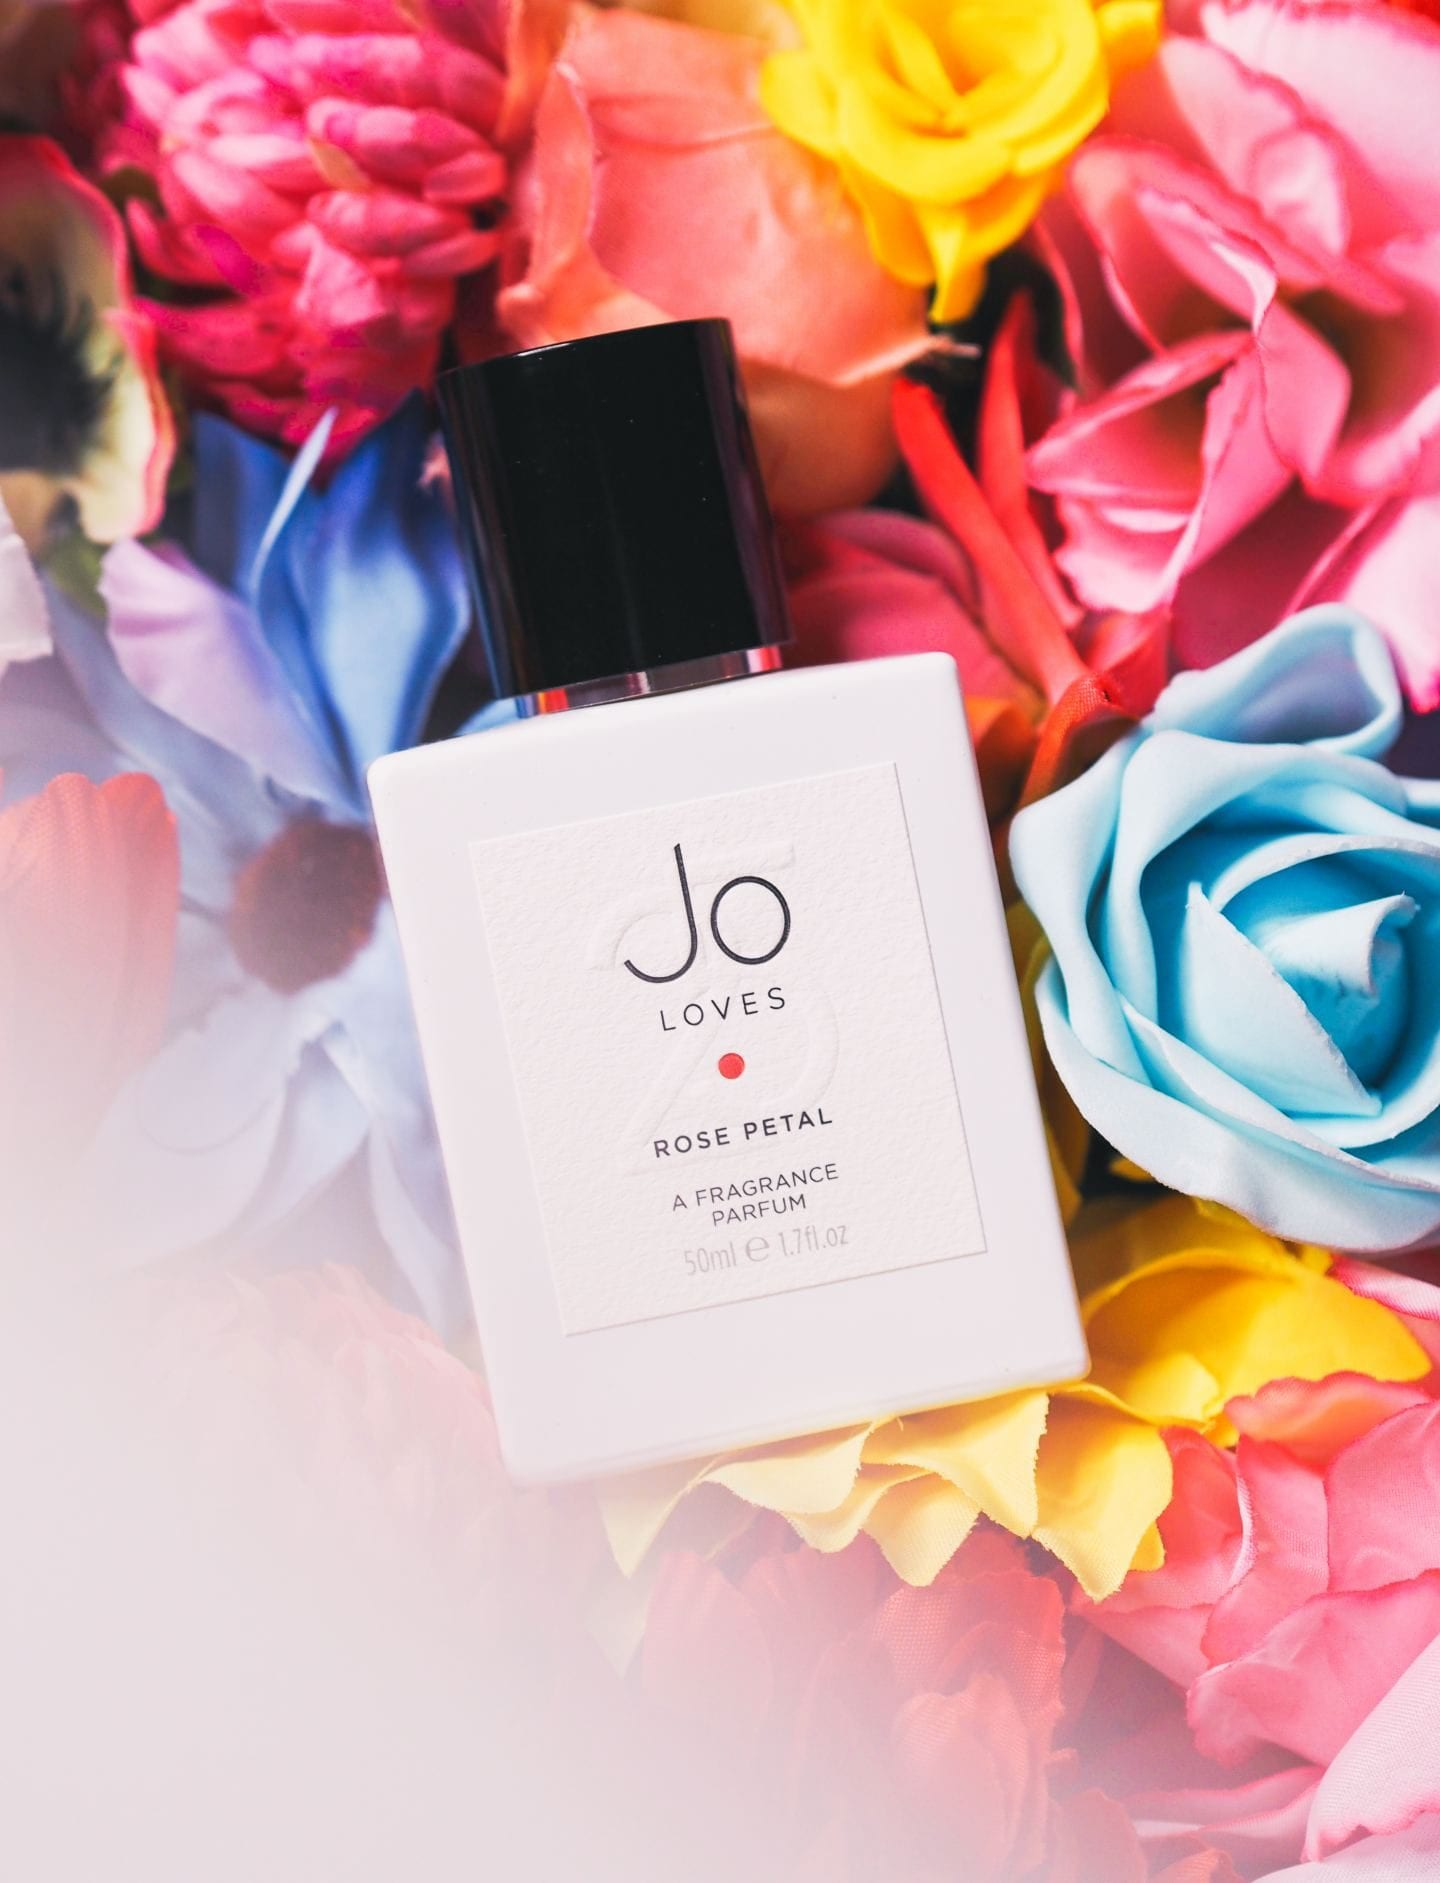 Fragrance Review Jo Loves Rose Petal 25 Perfume